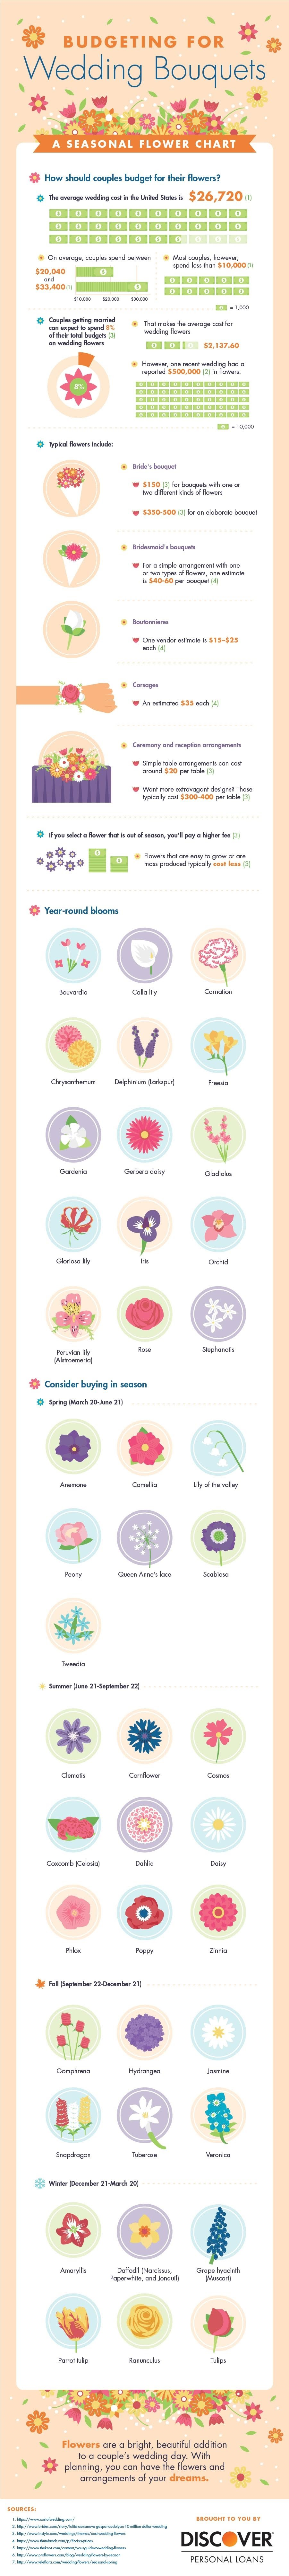 Budgeting for Wedding Bouquets: A Seasonal Flower Chart #infographic